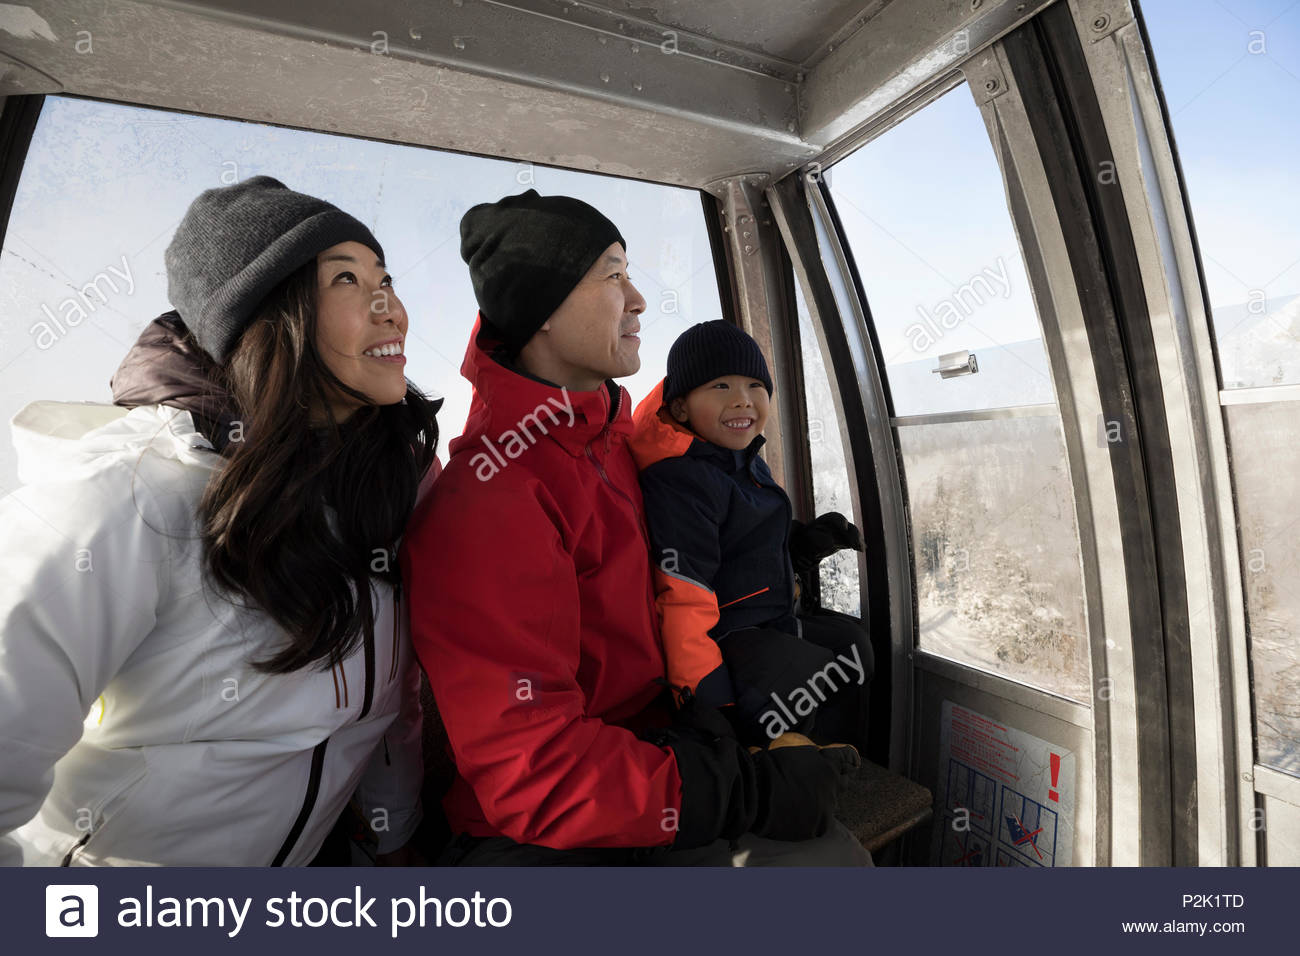 Les skieurs de la famille circonscription gondola Photo Stock